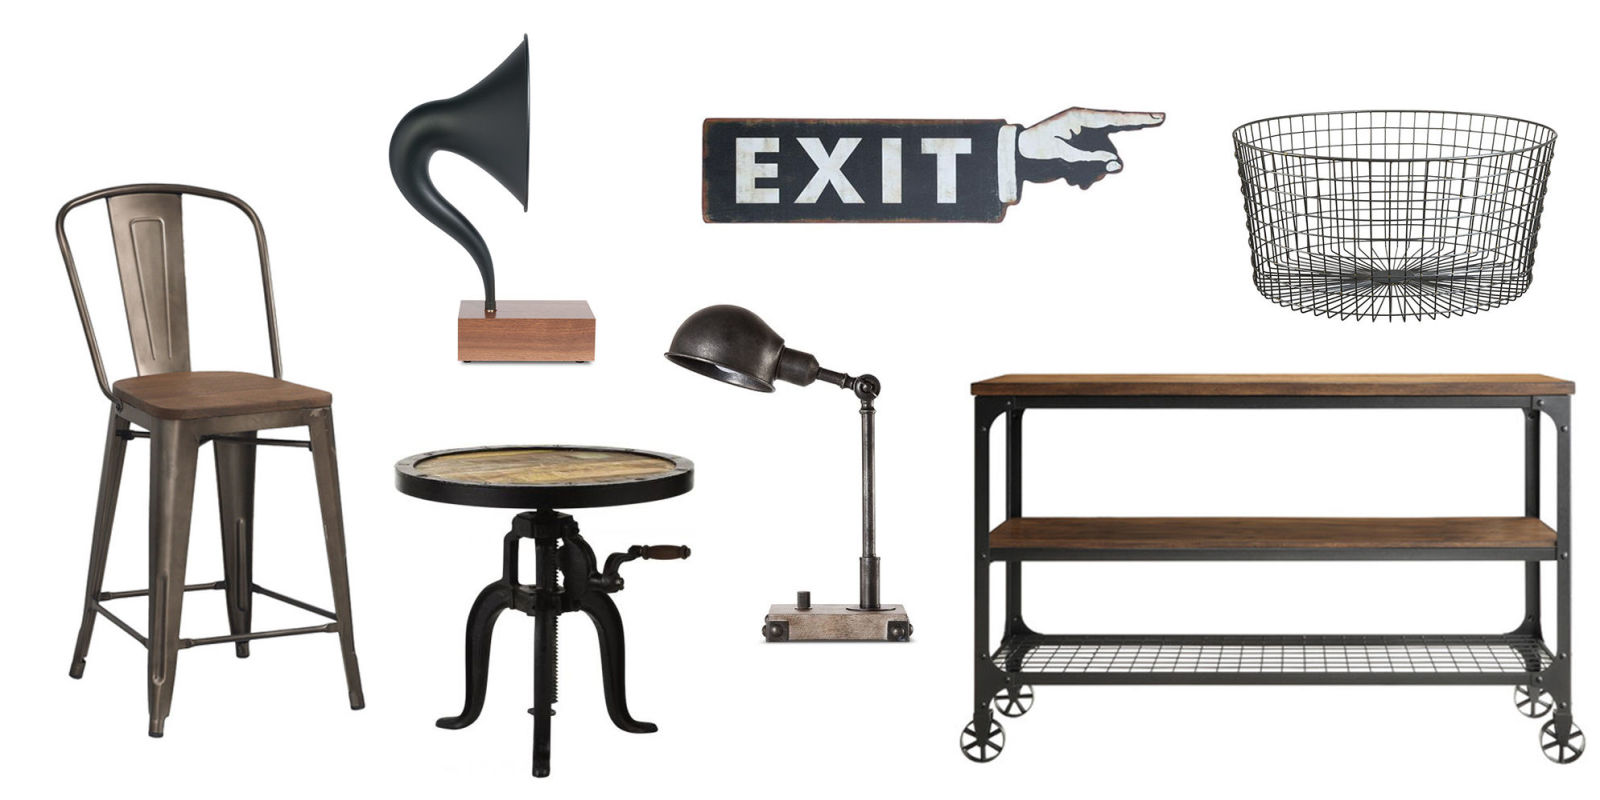 12 best industrial decor and furniture of 2018 ideas for for Best home decor items